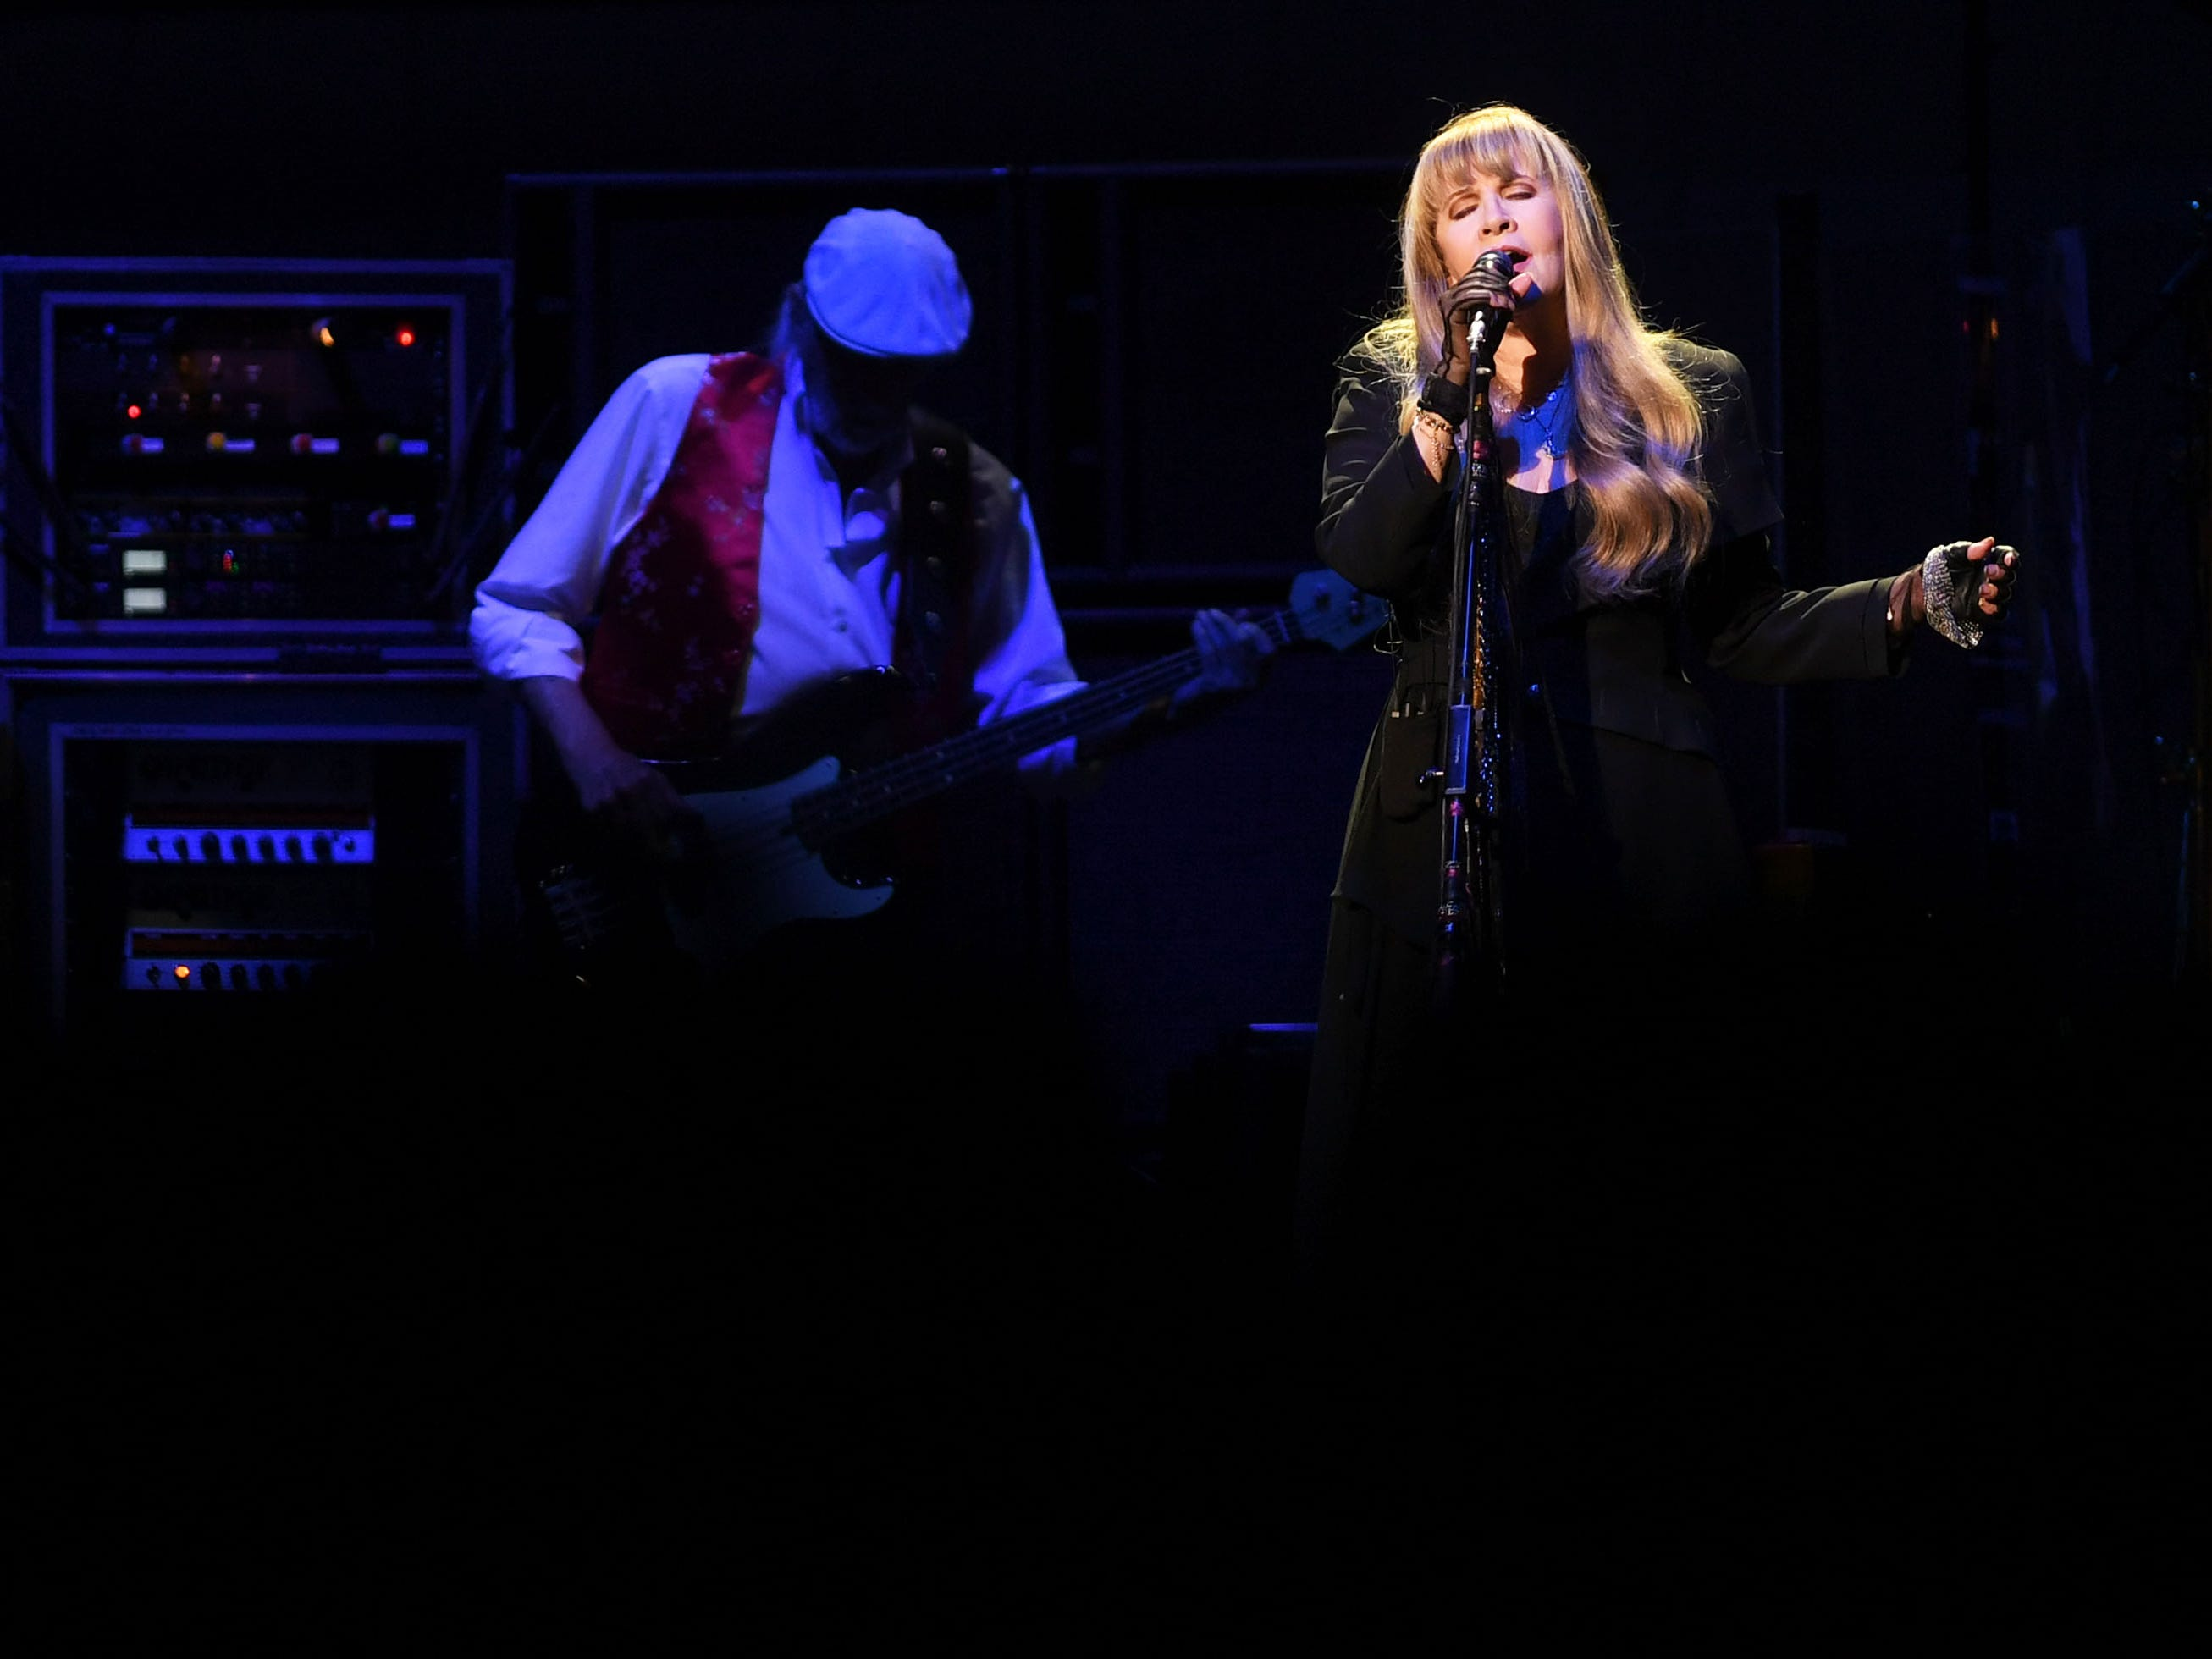 Fleetwood Mac's Stevie Nicks and John McVie perform at the Denny Sanford Premier Center Saturday, Feb. 2, in Sioux Falls. The new lineup included Mick Fleetwood, John McVie, Stevie Nicks, Christine McVie, Mike Campbell and Neil Finn.